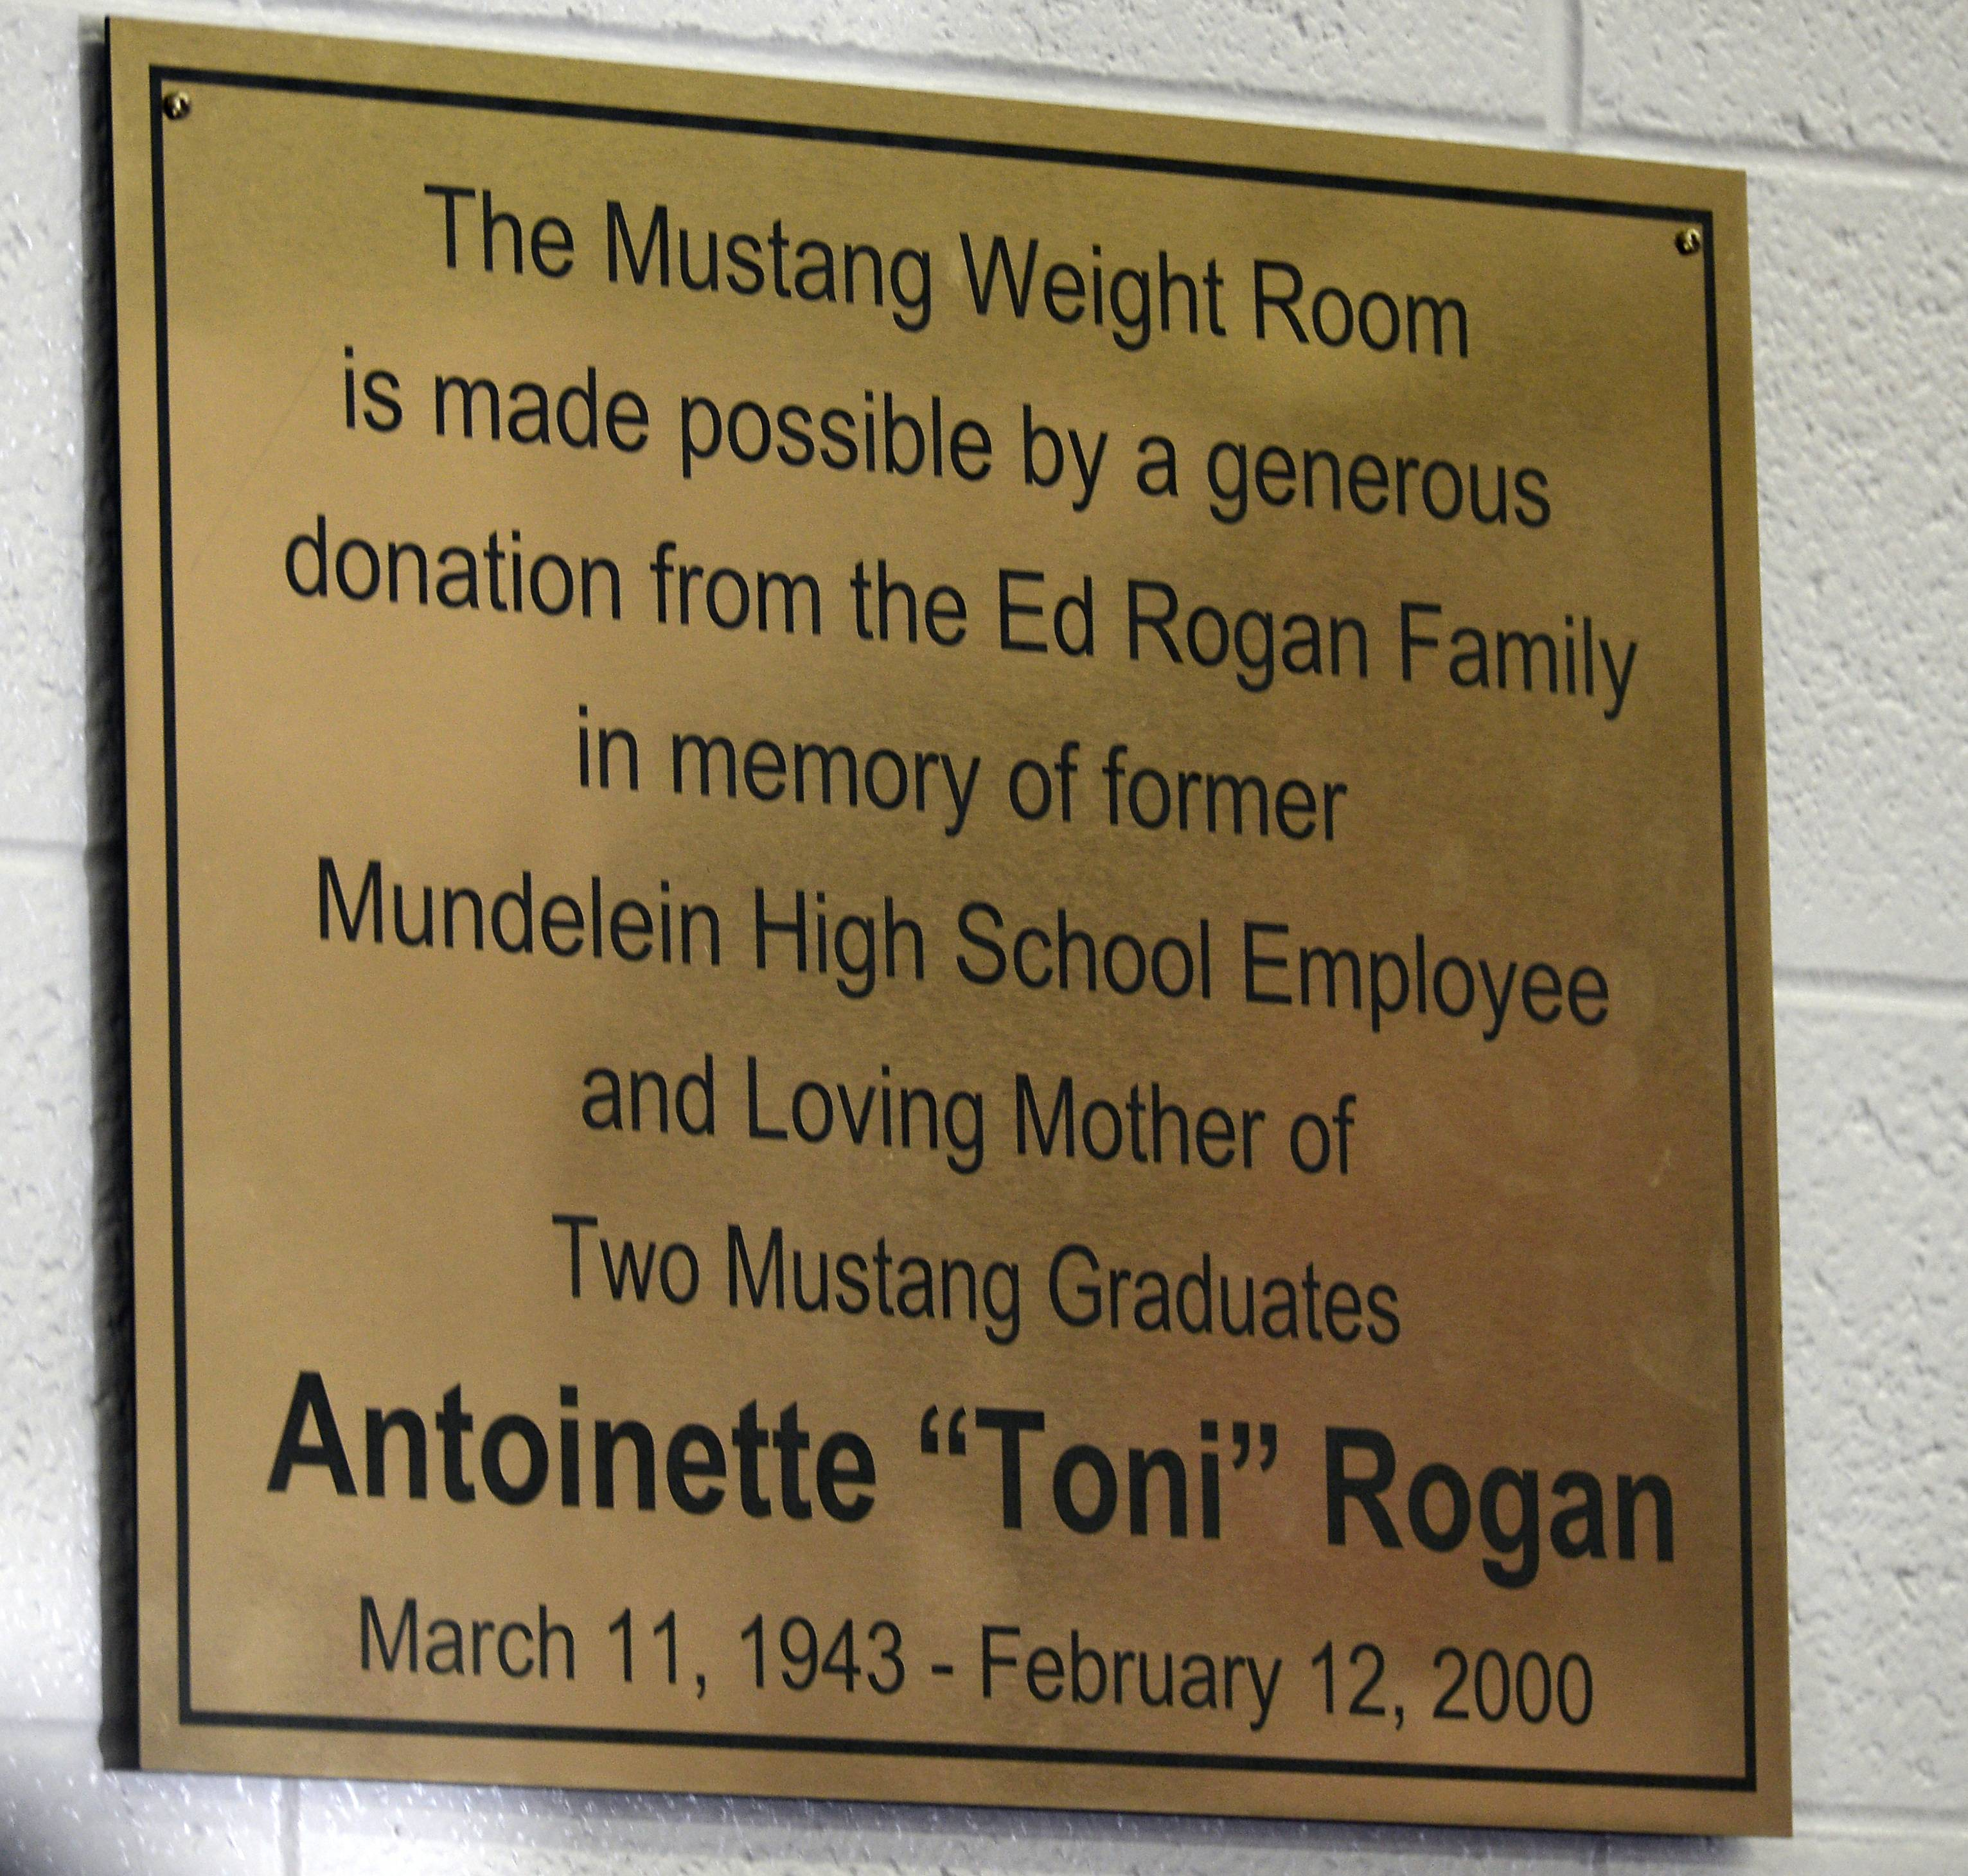 Large memorial donations provide lift to Mundelein High athletics